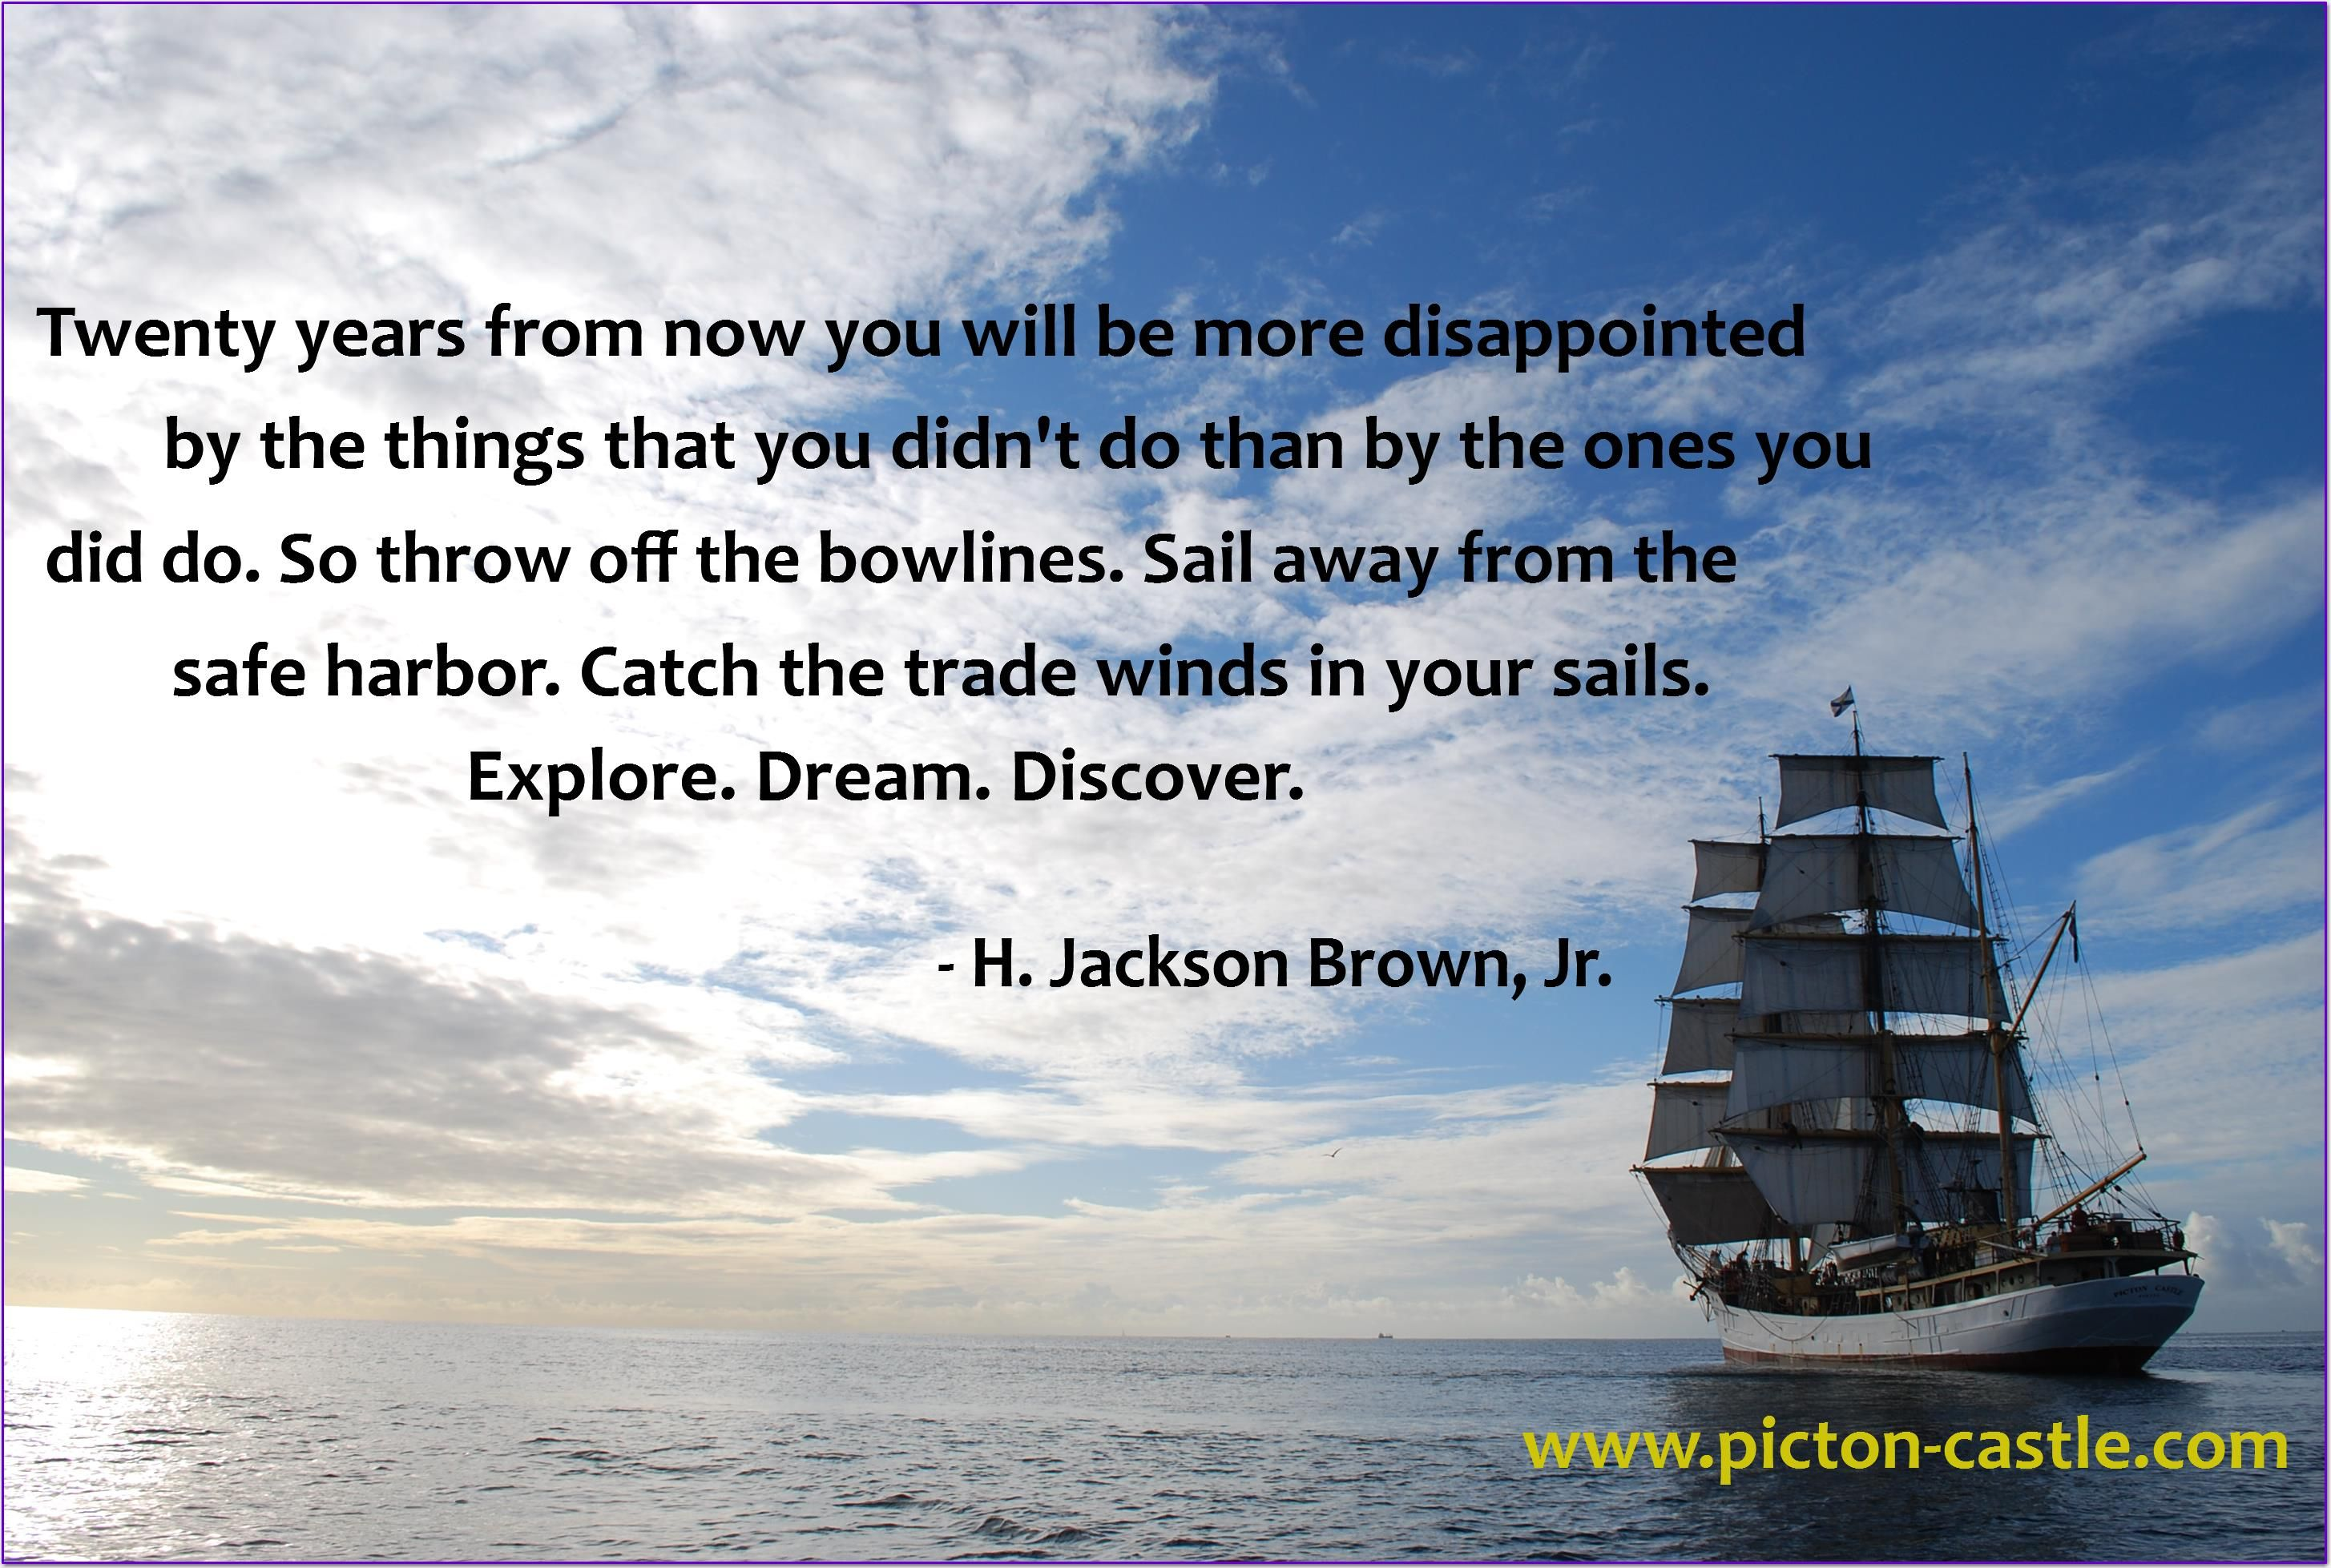 Picture Quotes About Cruising: Twenty Years From Now ... #Inspirational #quote